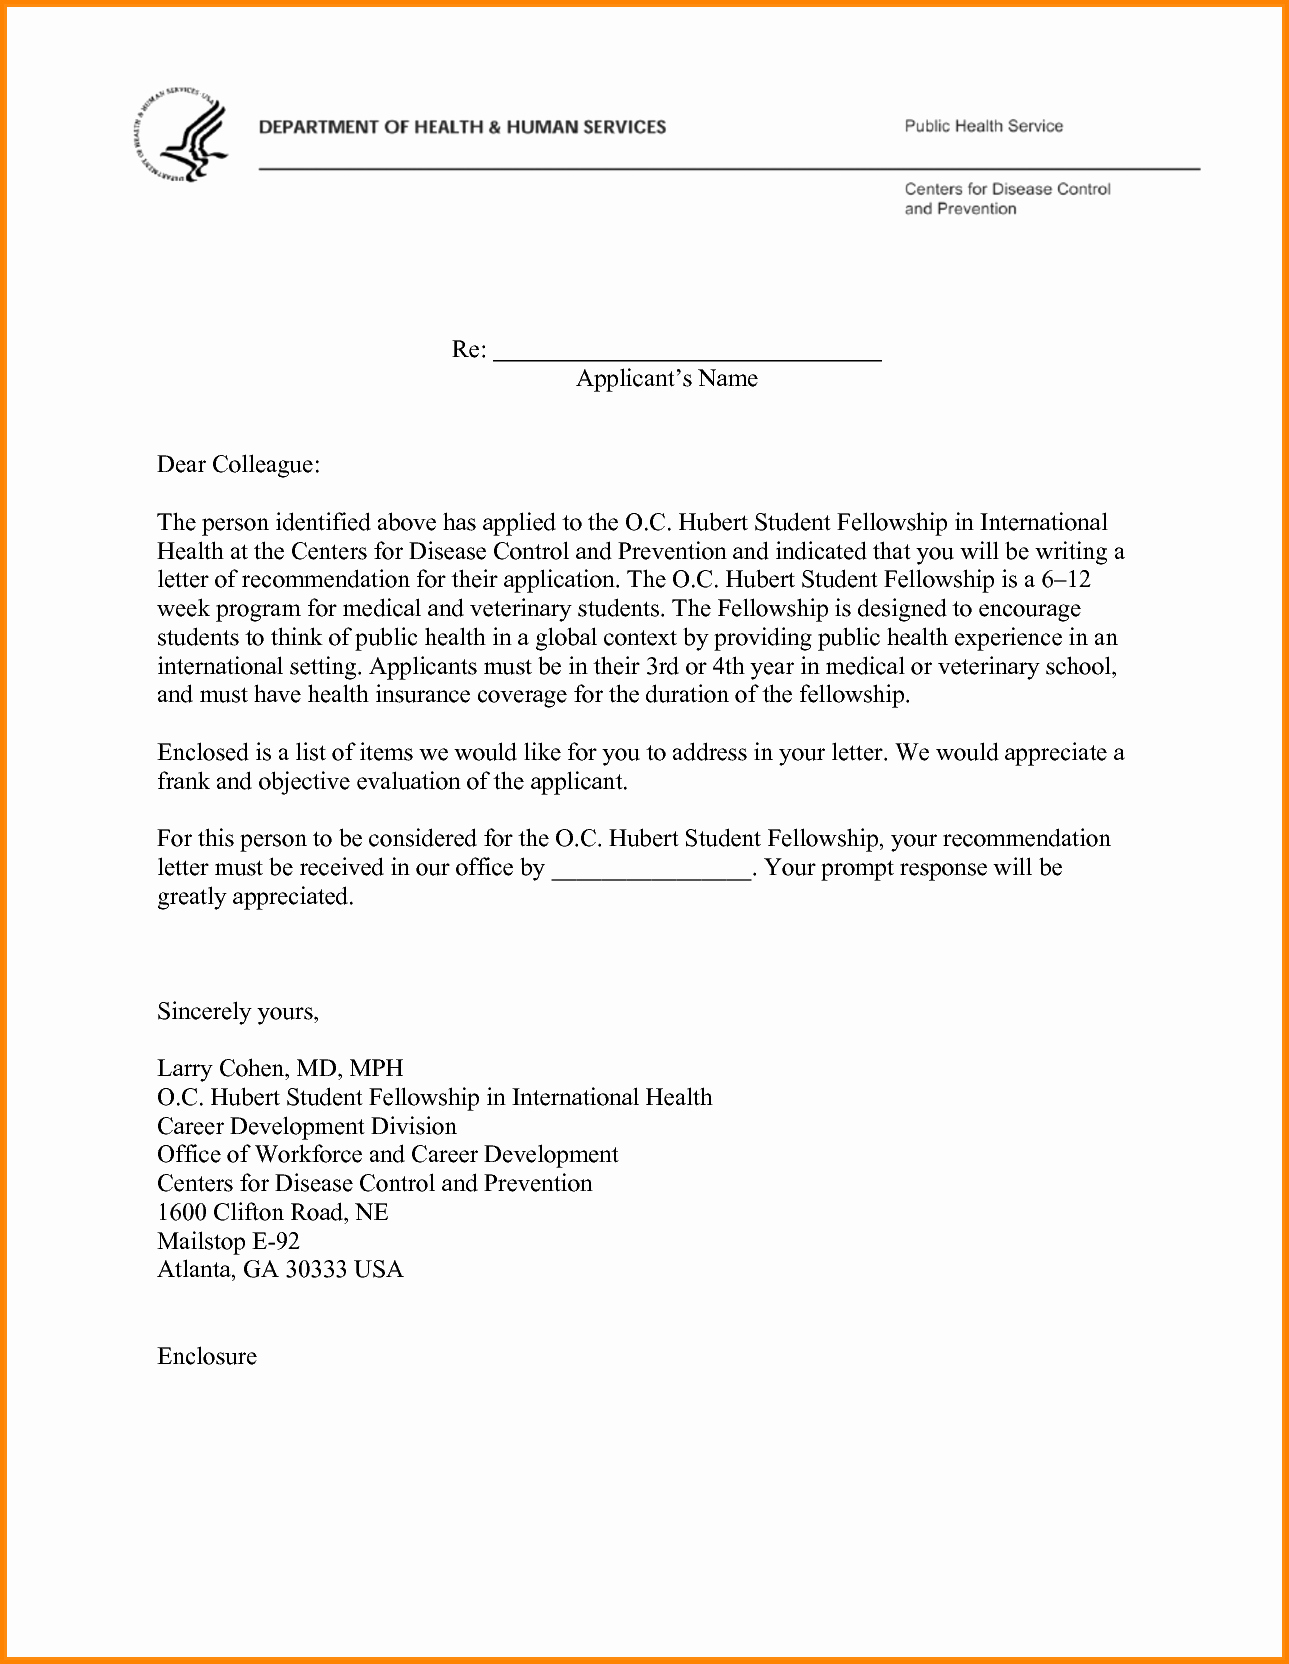 Med School Recommendation Letter Template Fresh 12 Letter Of Re Mendation for Medical School Sample